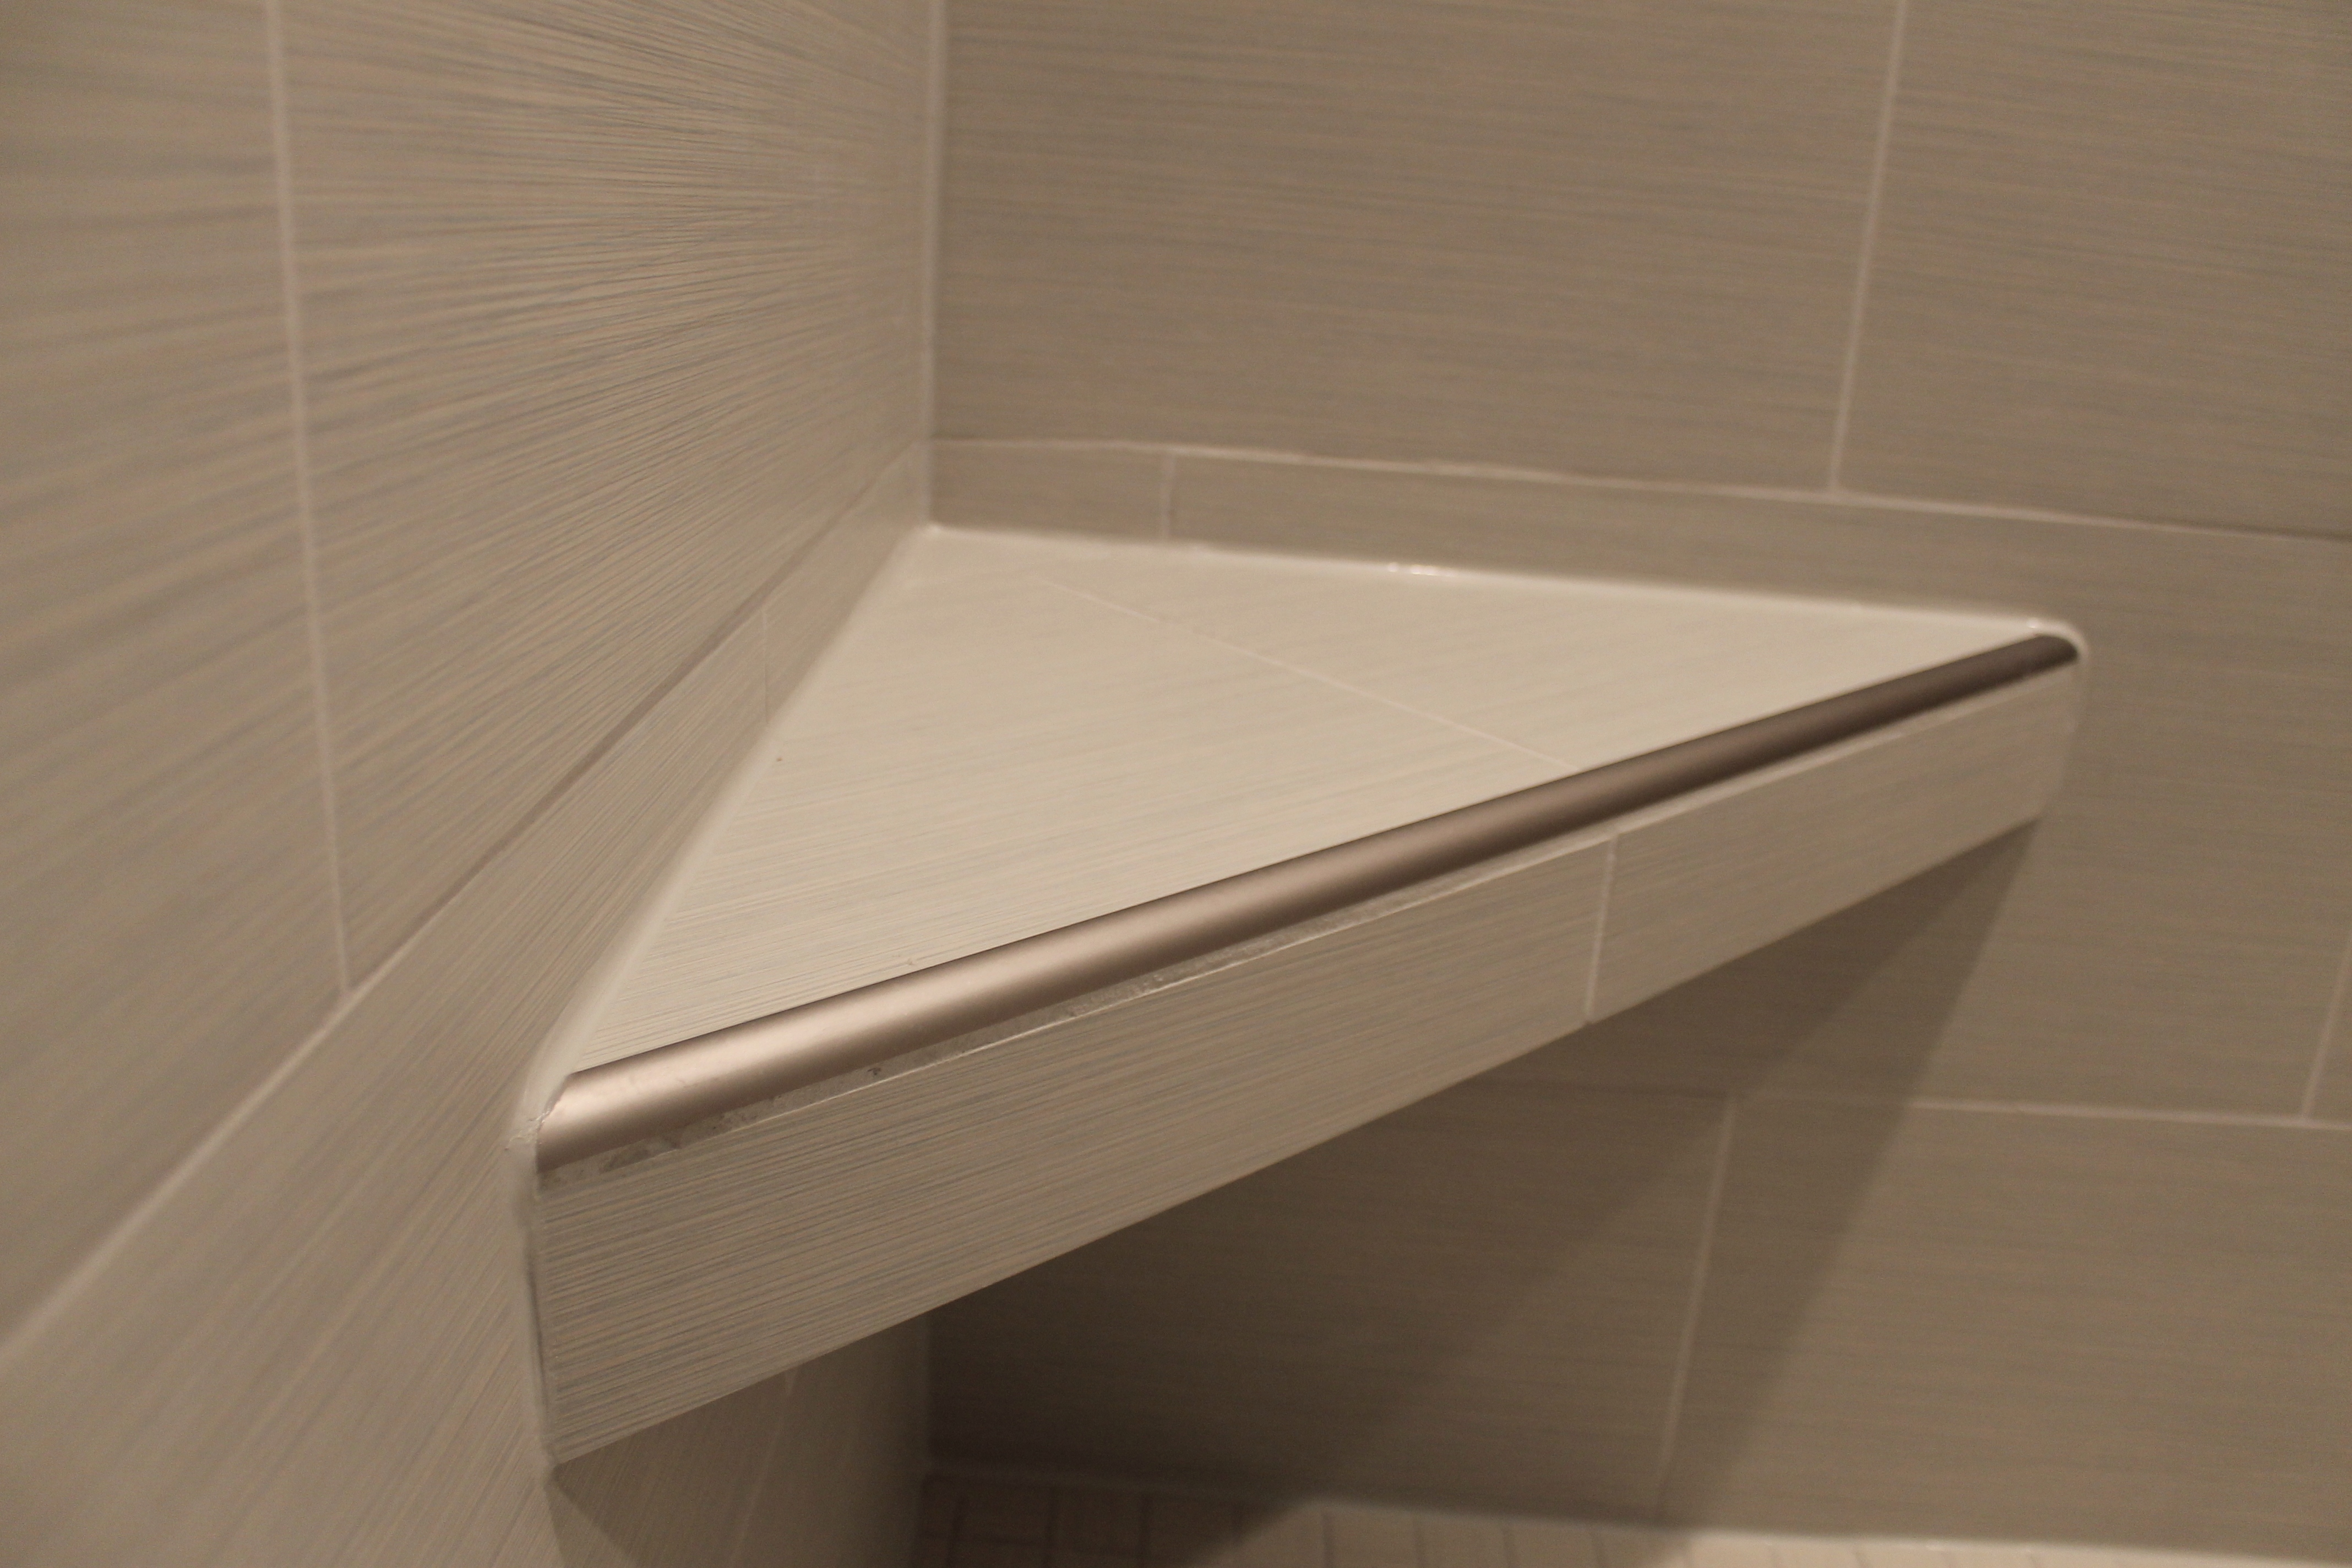 s seat amazon uk shower bench tub for